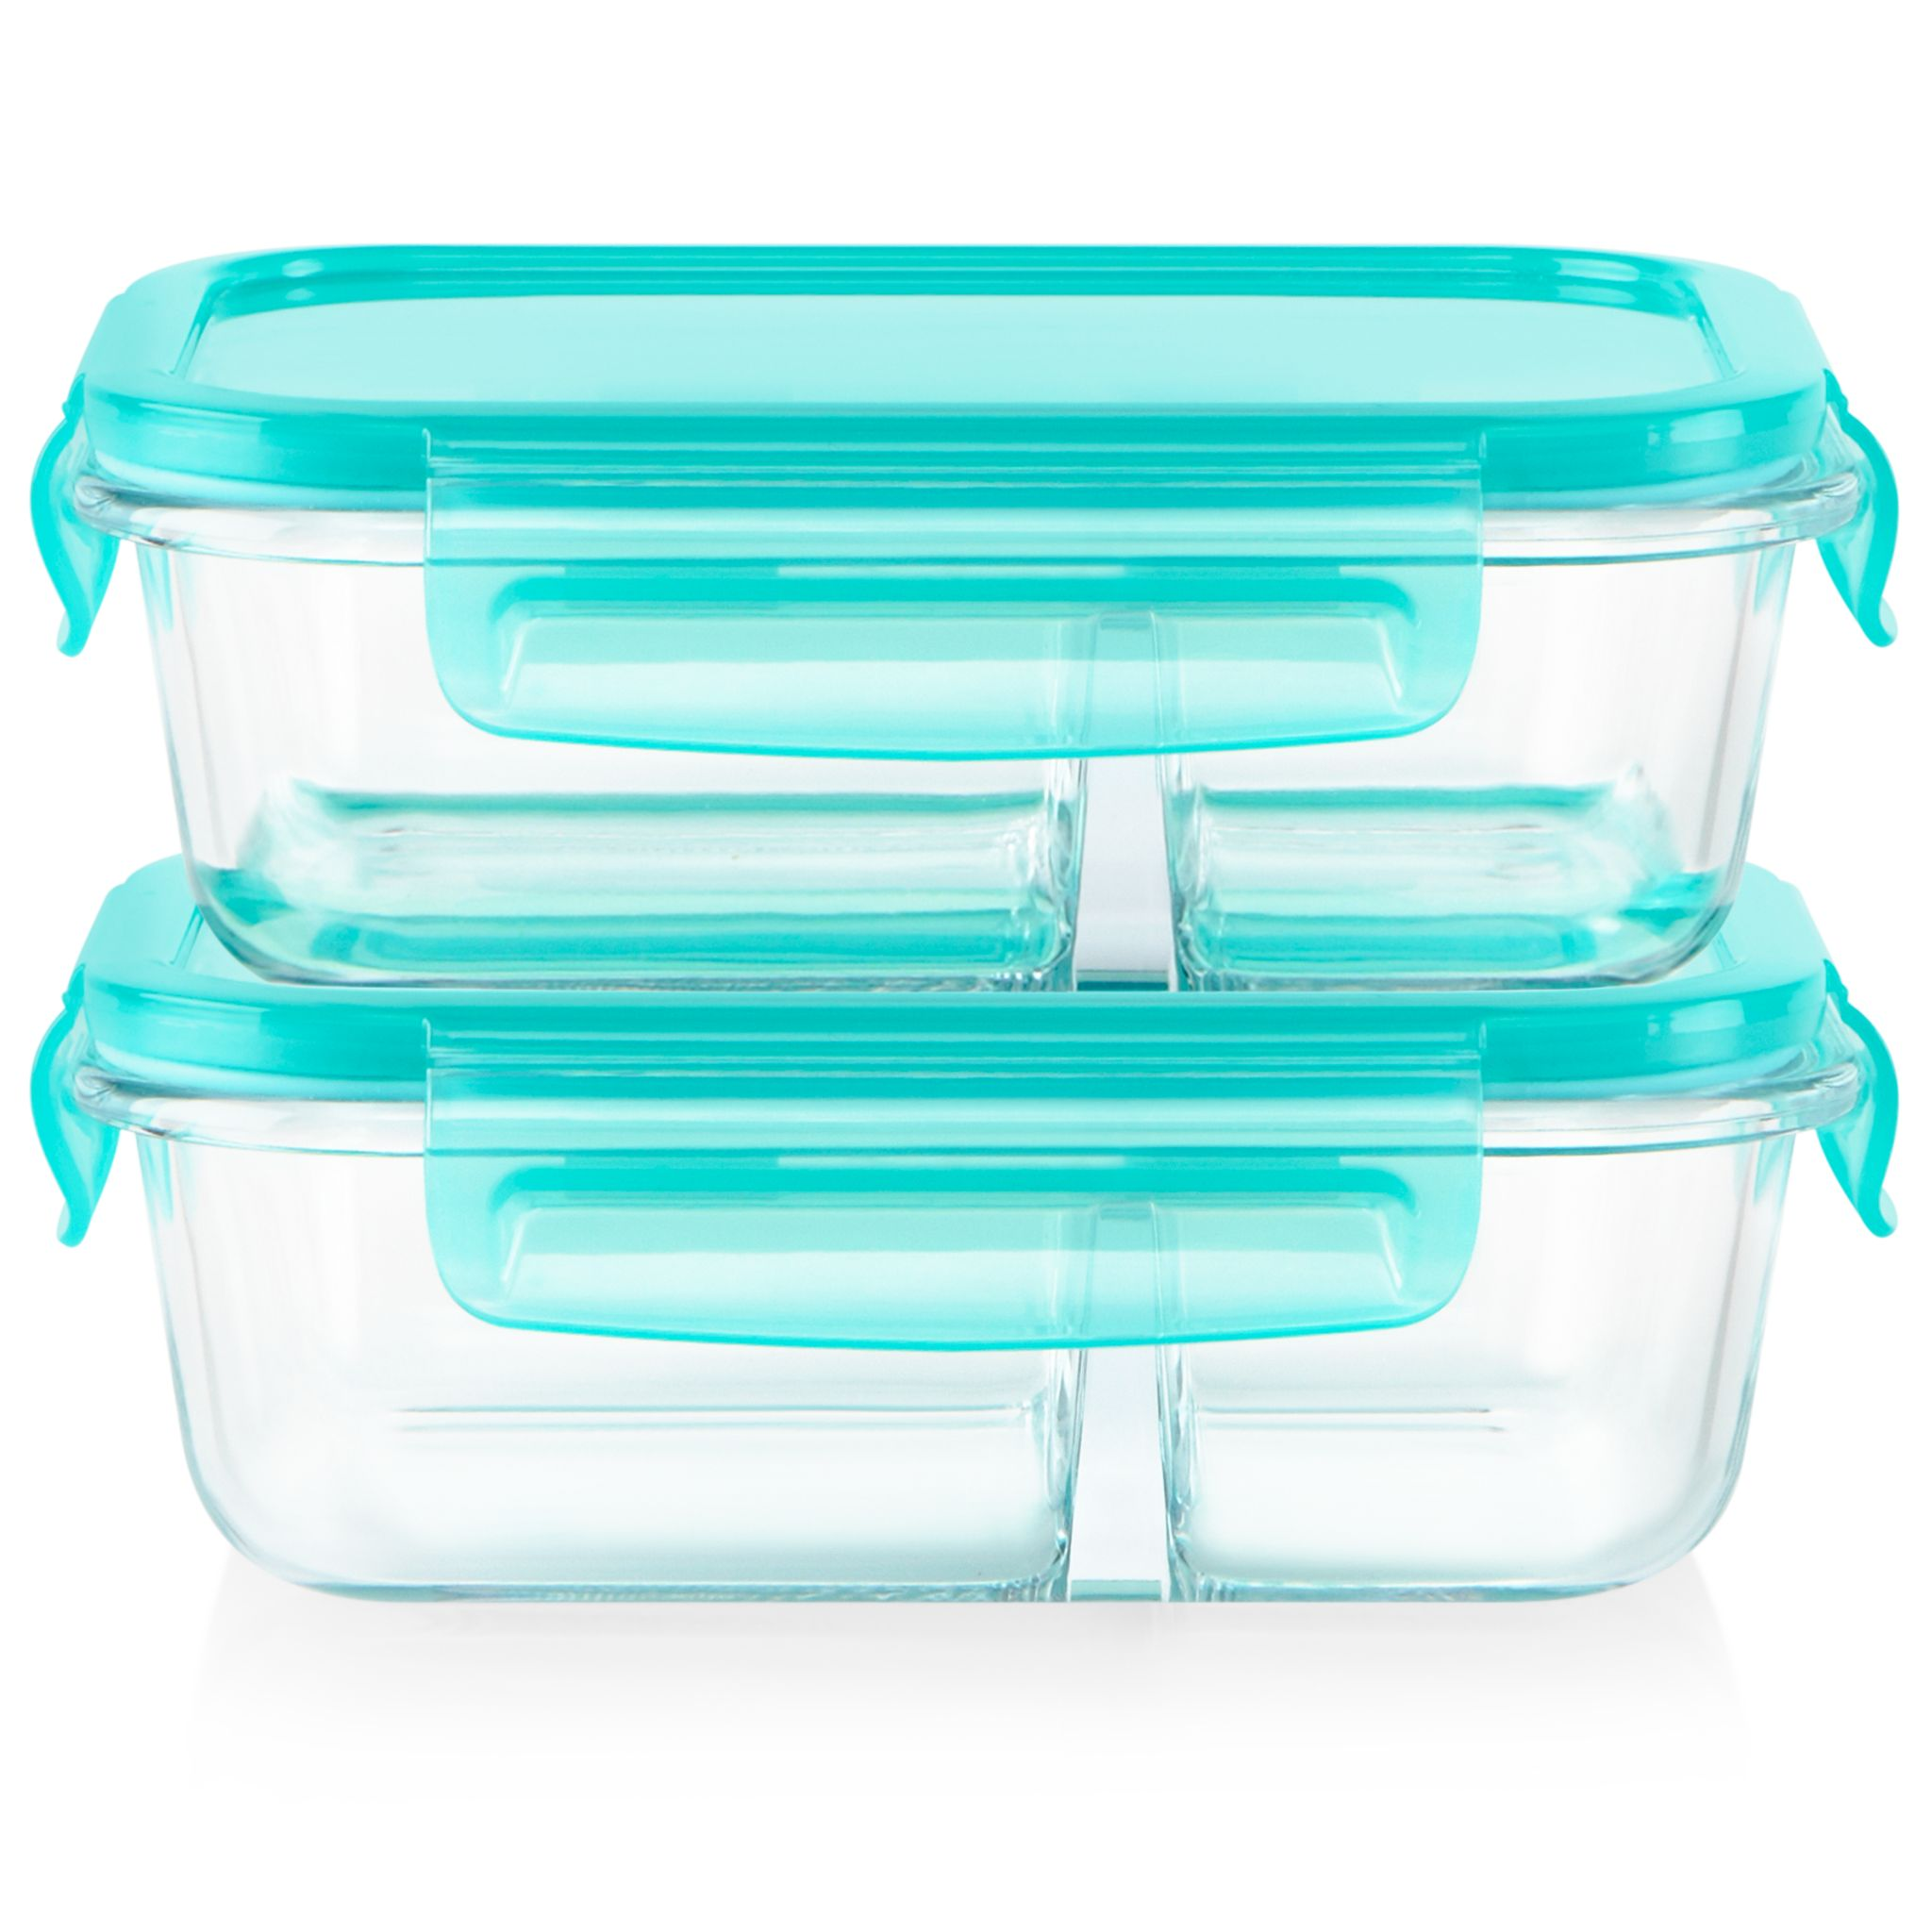 MealBox 4-piece 2.1-cup Divided Glass Food Storage Set